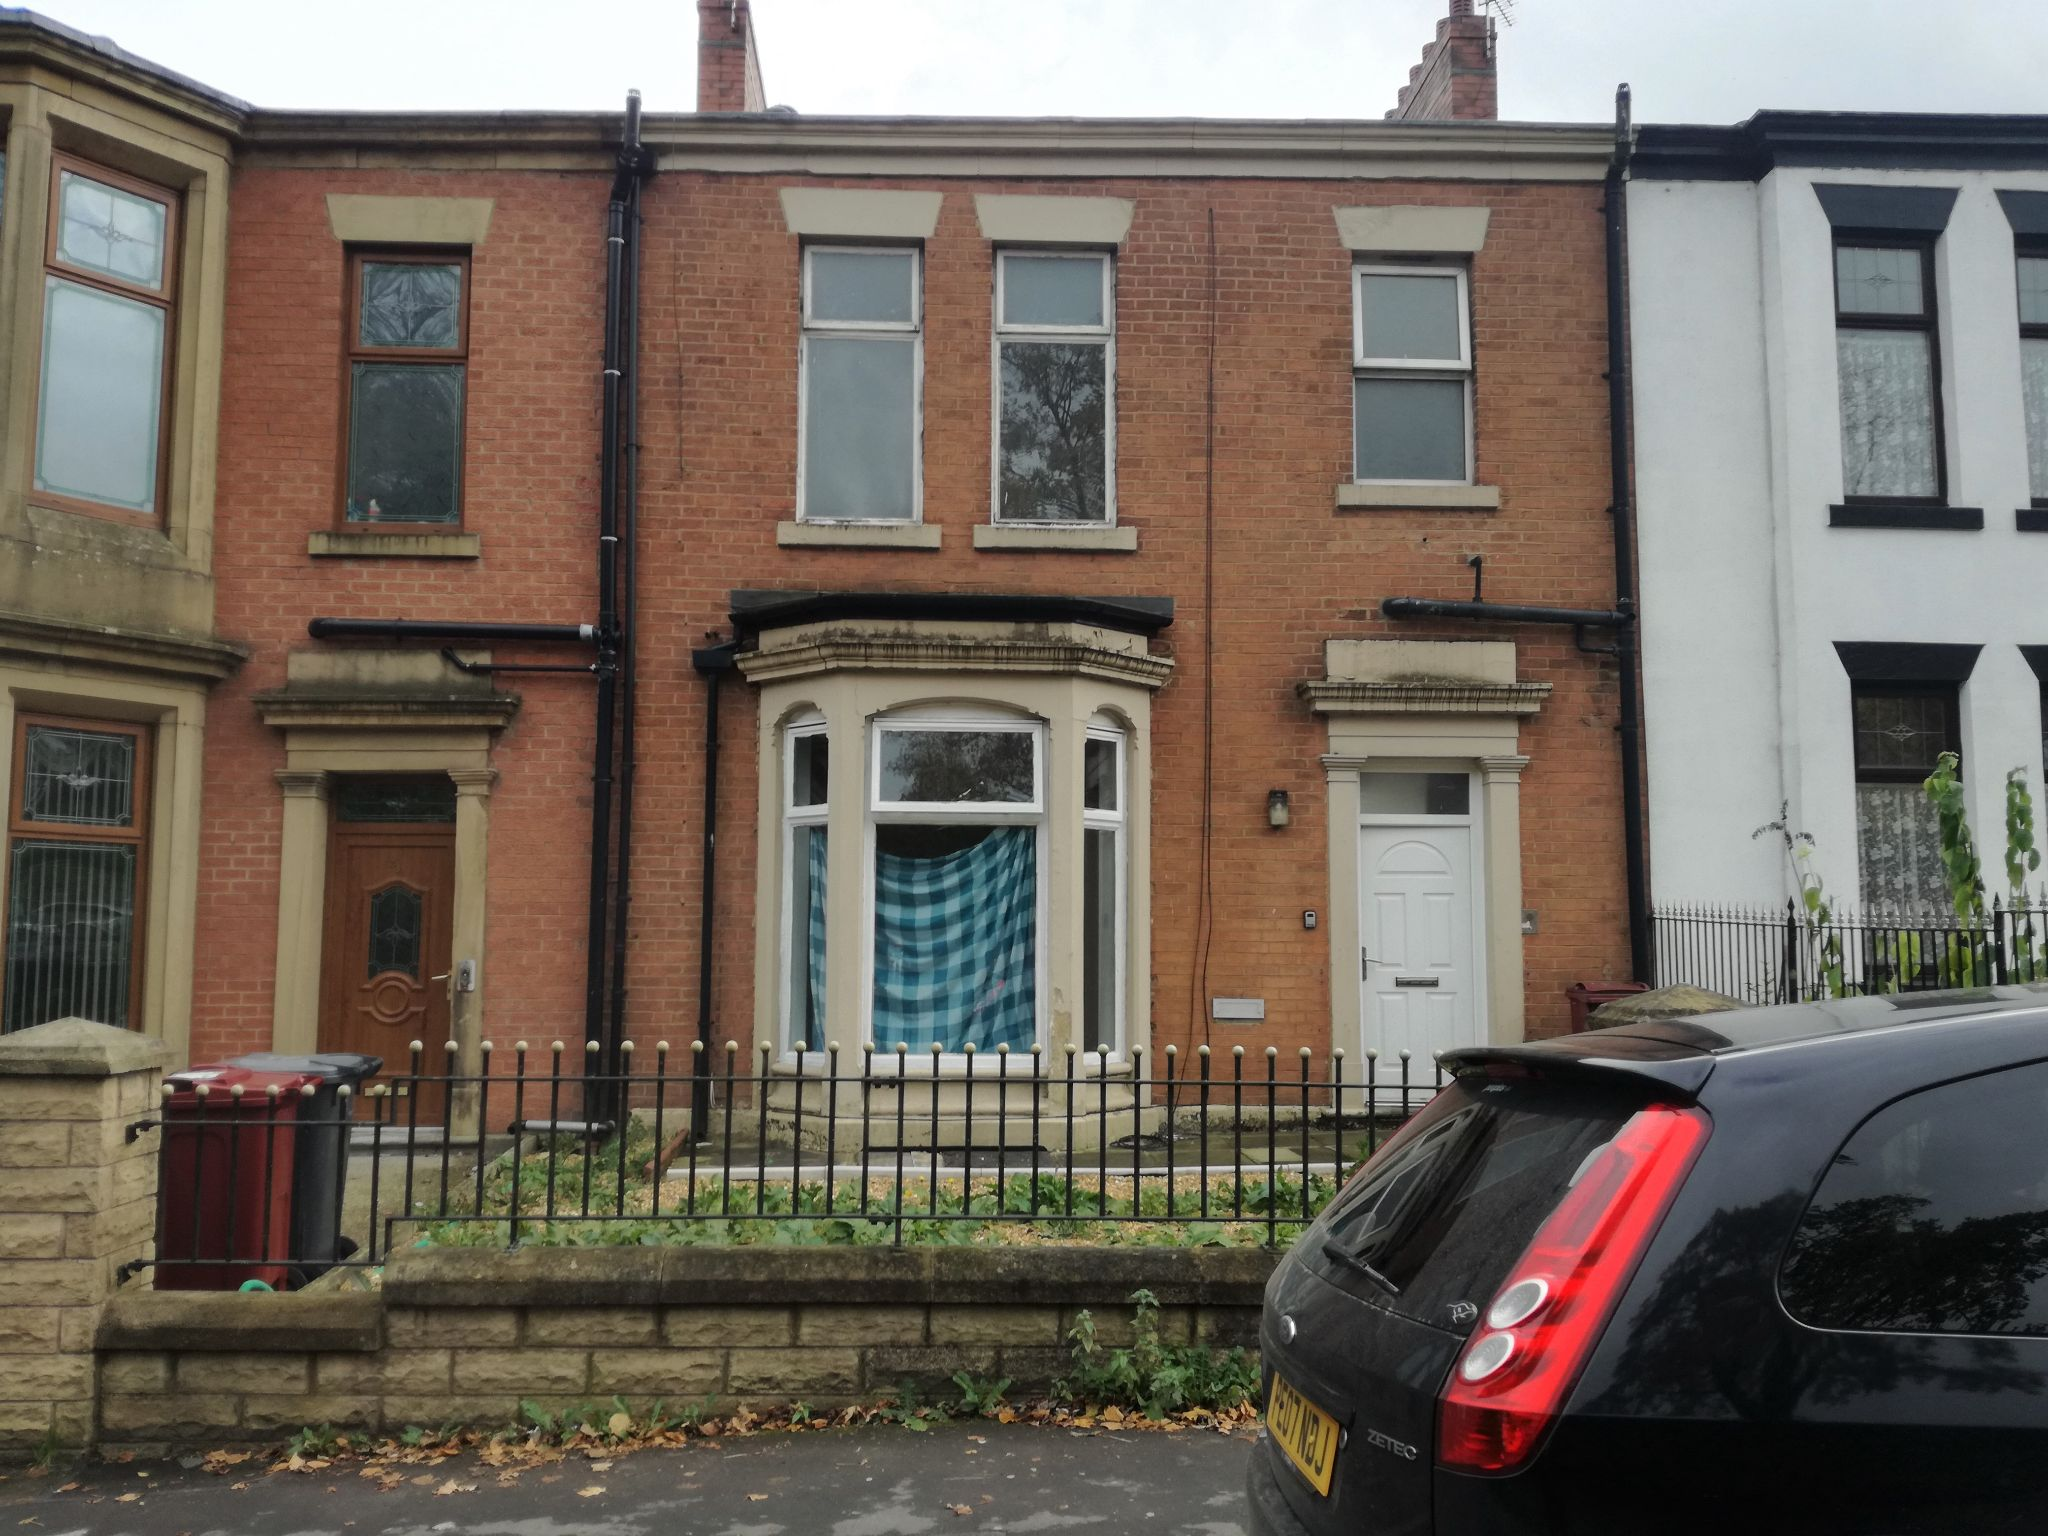 4 Bedroom Mid Terraced House To Rent - Photograph 1